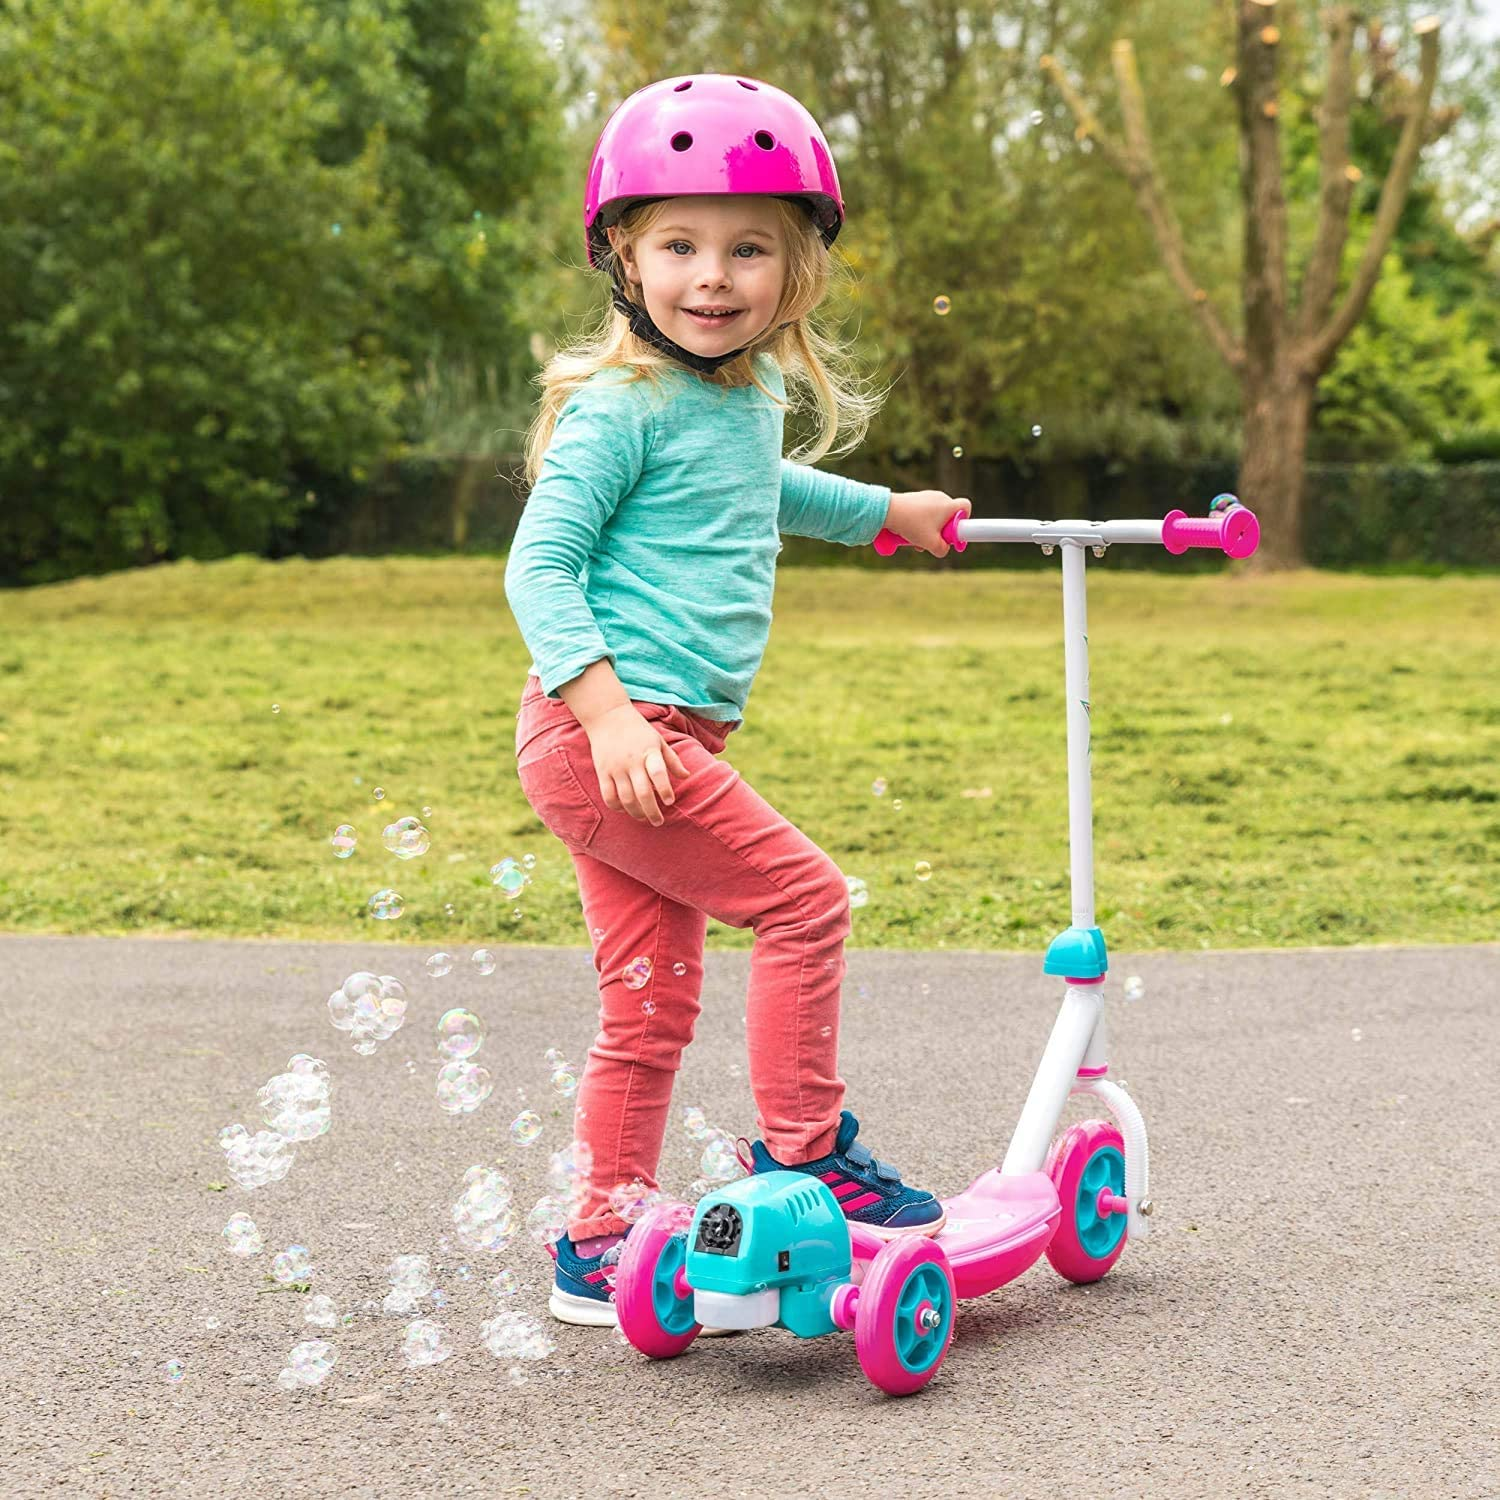 Unibos NEW Kid/'s Lightweight 3 Wheels Push Kick Ride Scooter with Bubble Blower Pink